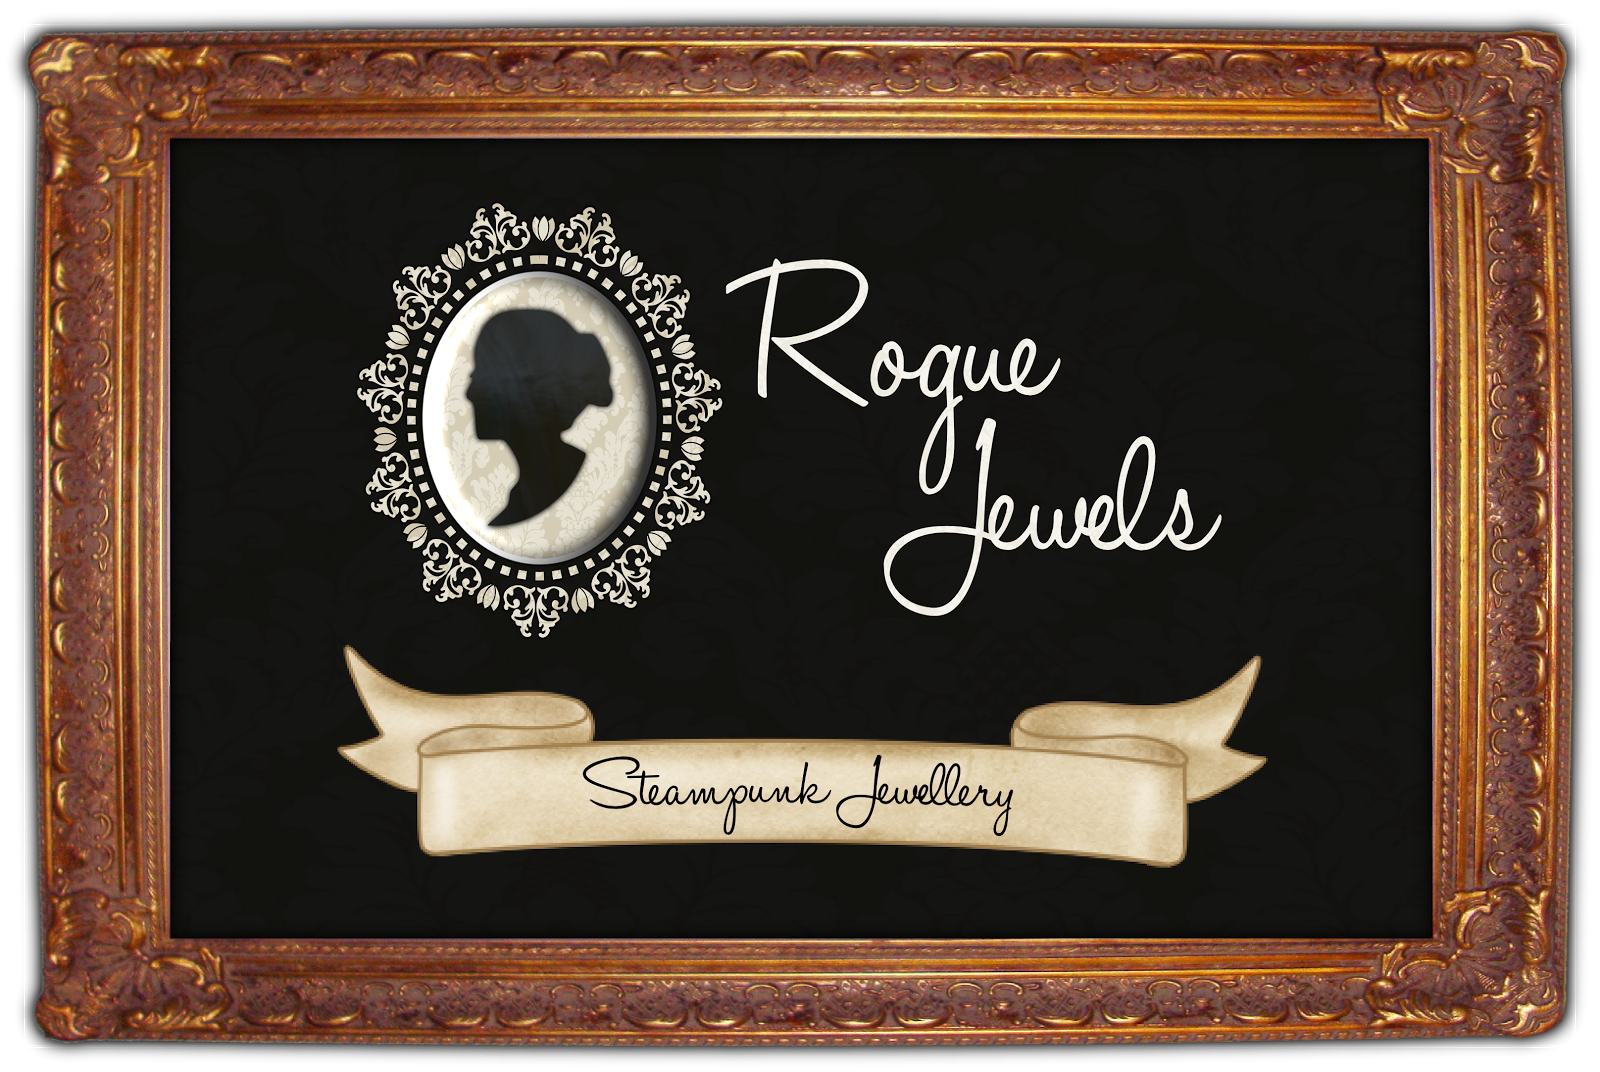 RogueJewels